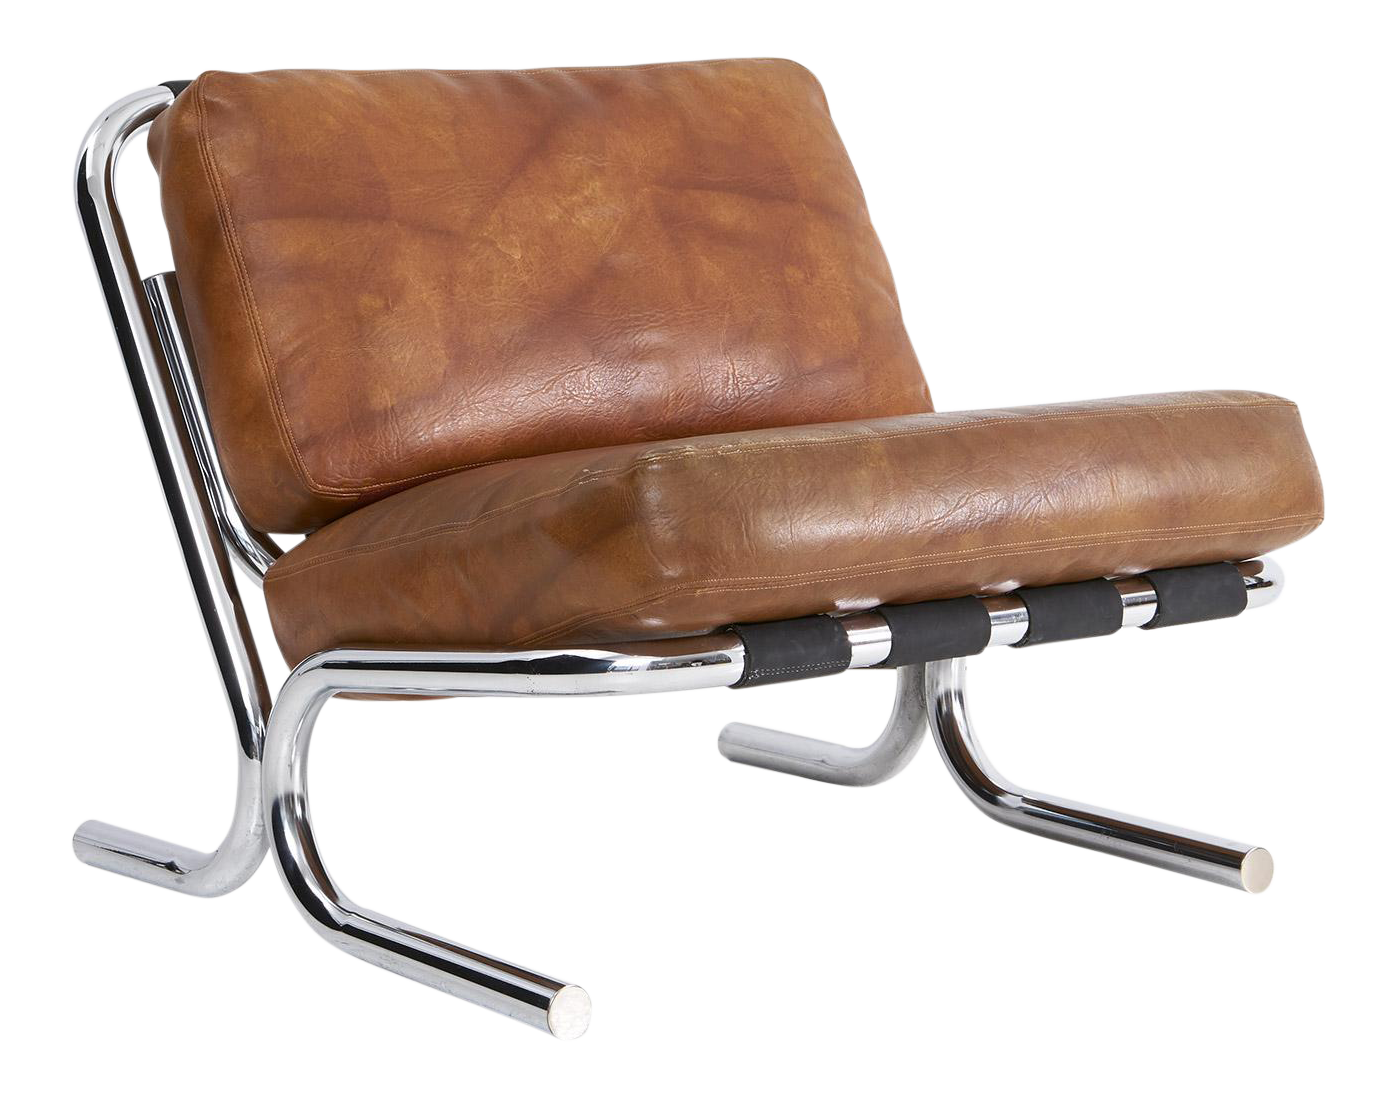 milo baughman lounge chair from decaso vintage furniture - vintage chairs - vintage furniture - antiques - antique furniture - leather sling chairs